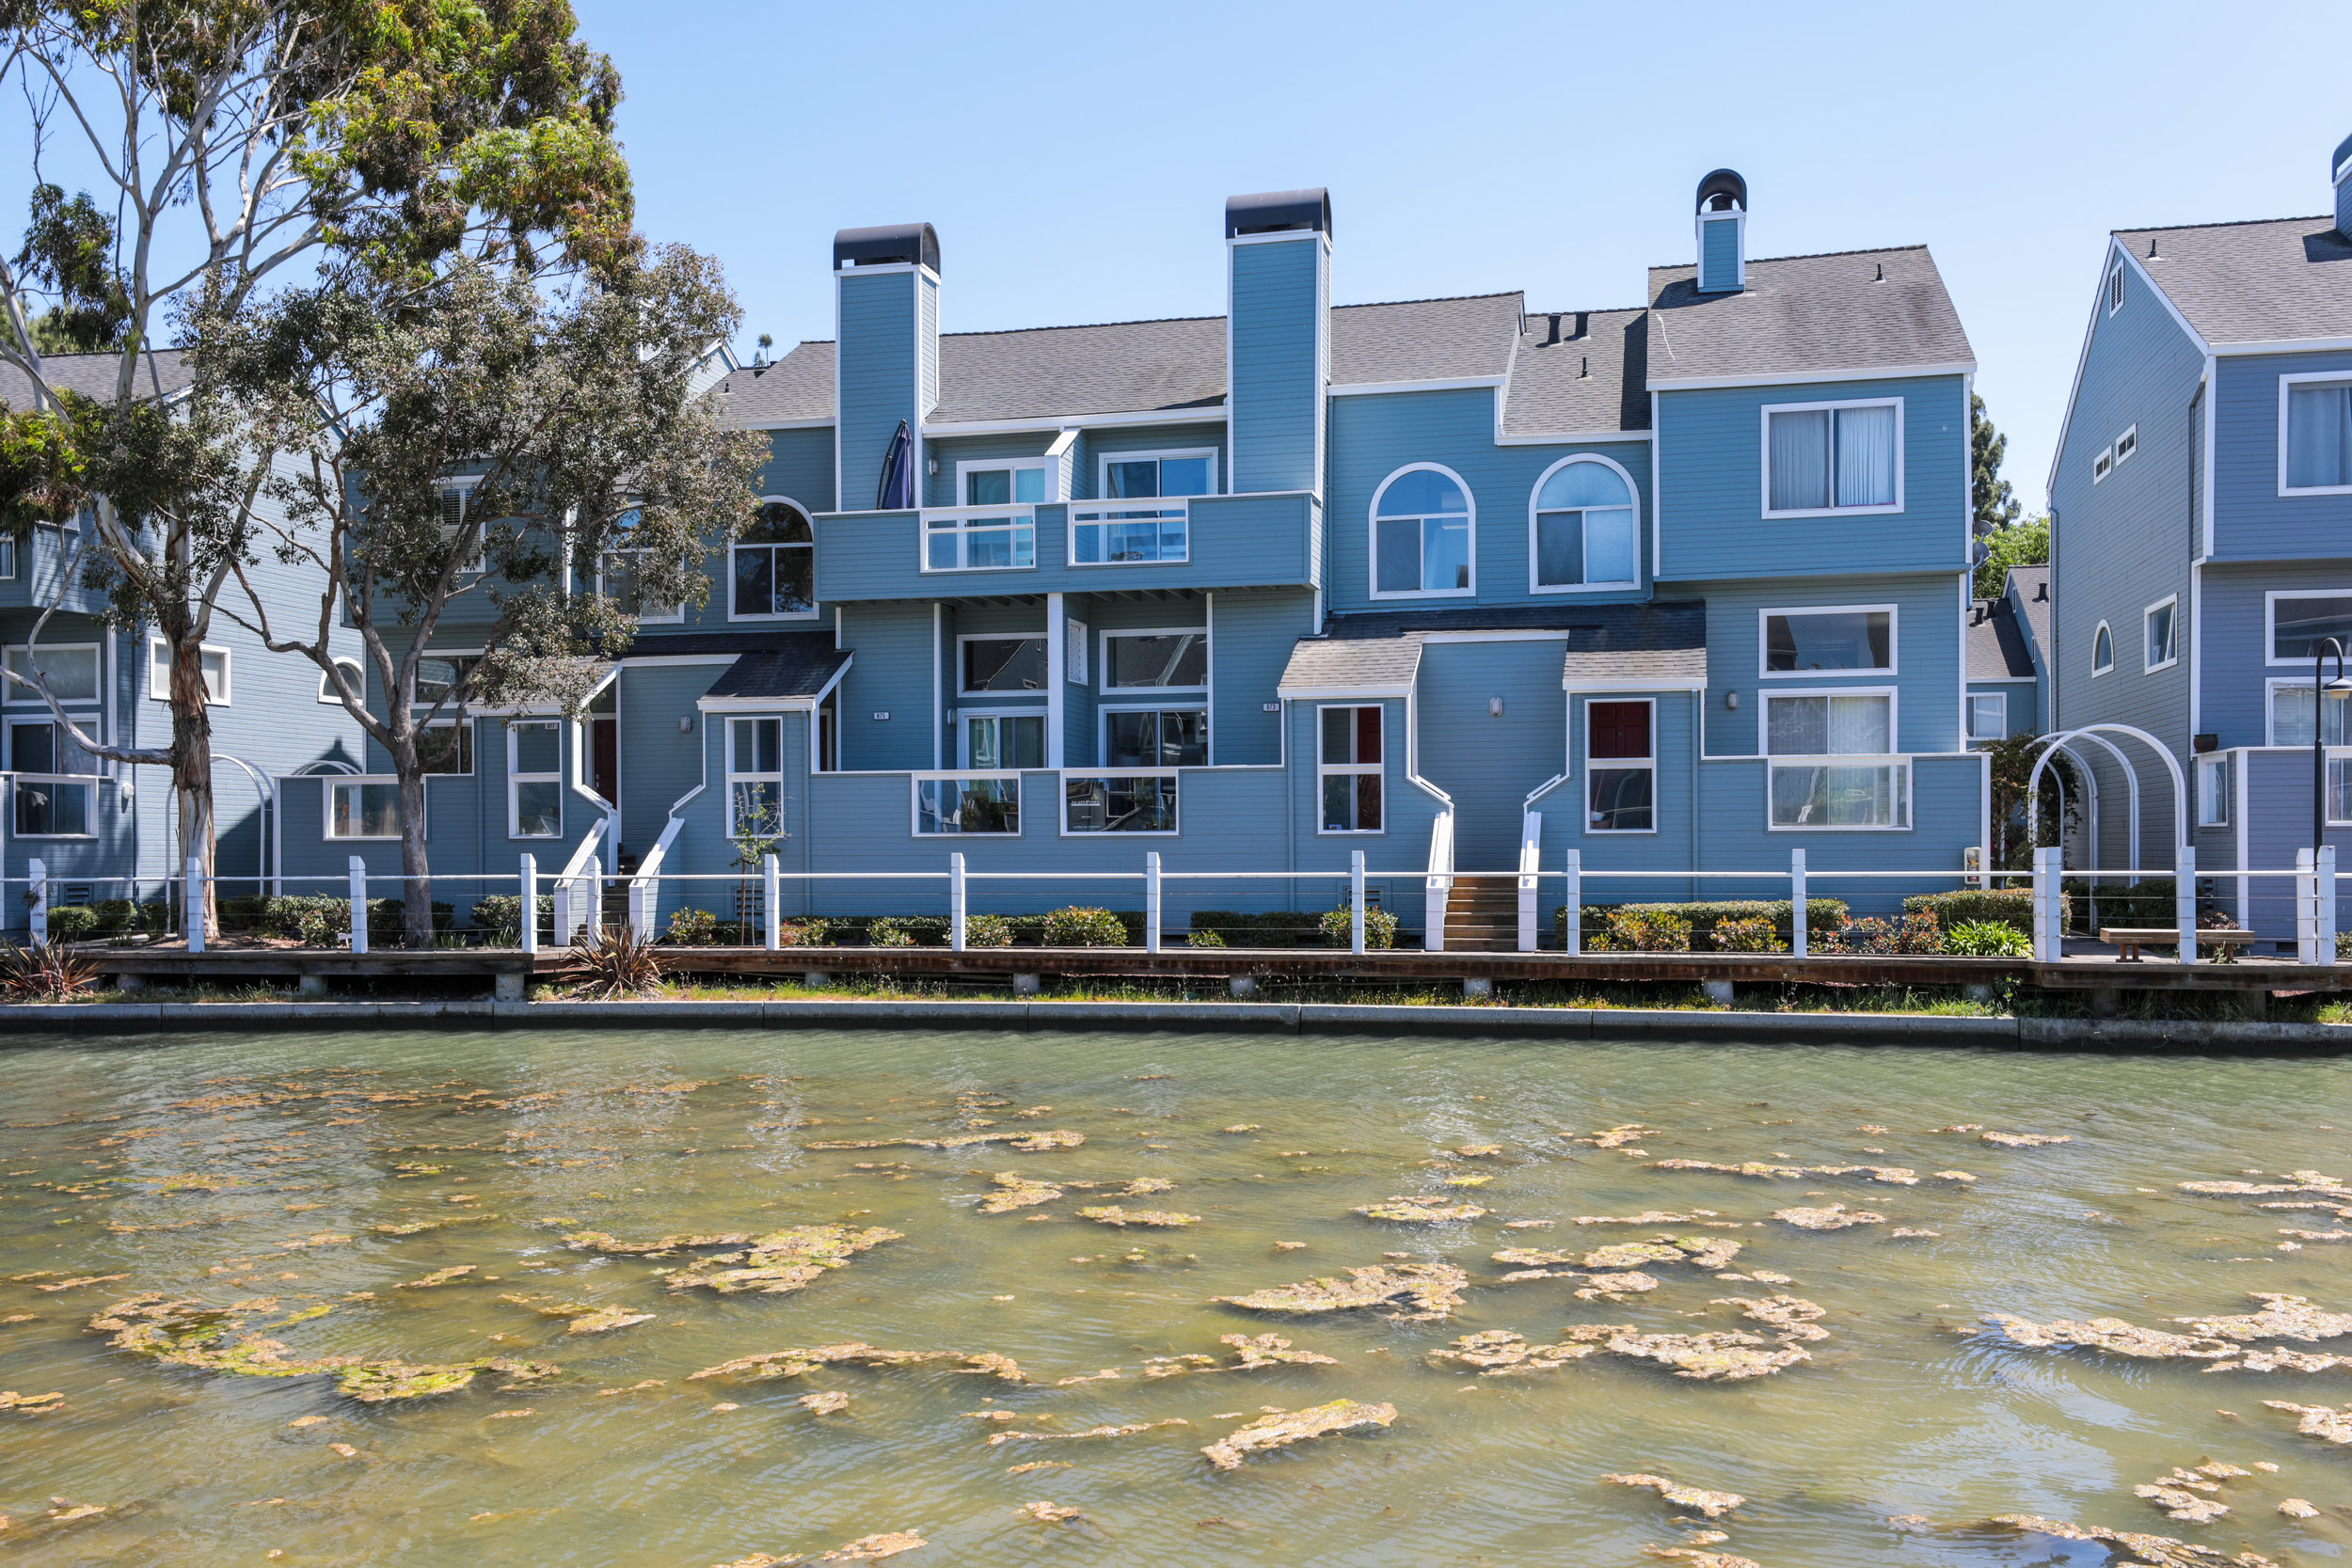 873 BOARDWALK PLACE, REDWOOD SHORES - SOLD: $1,100,000 | Represented Seller